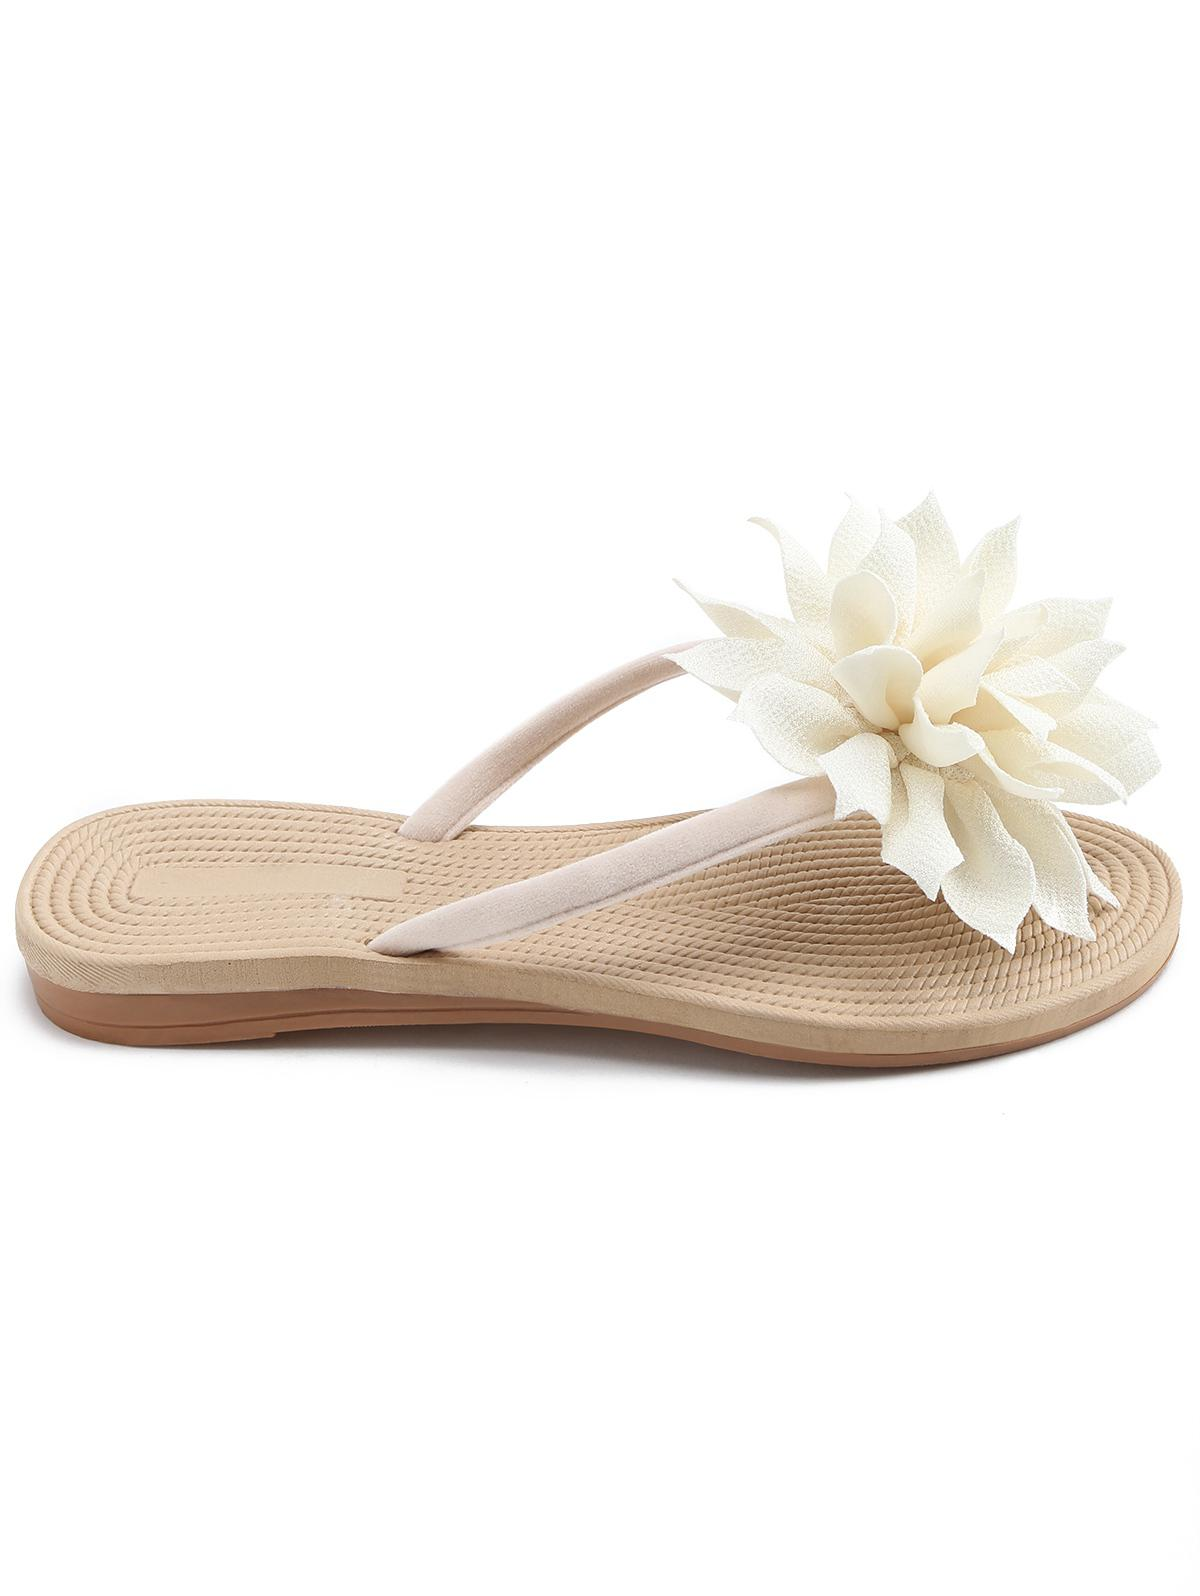 Floral Decorated Flat Heel Flip Flops